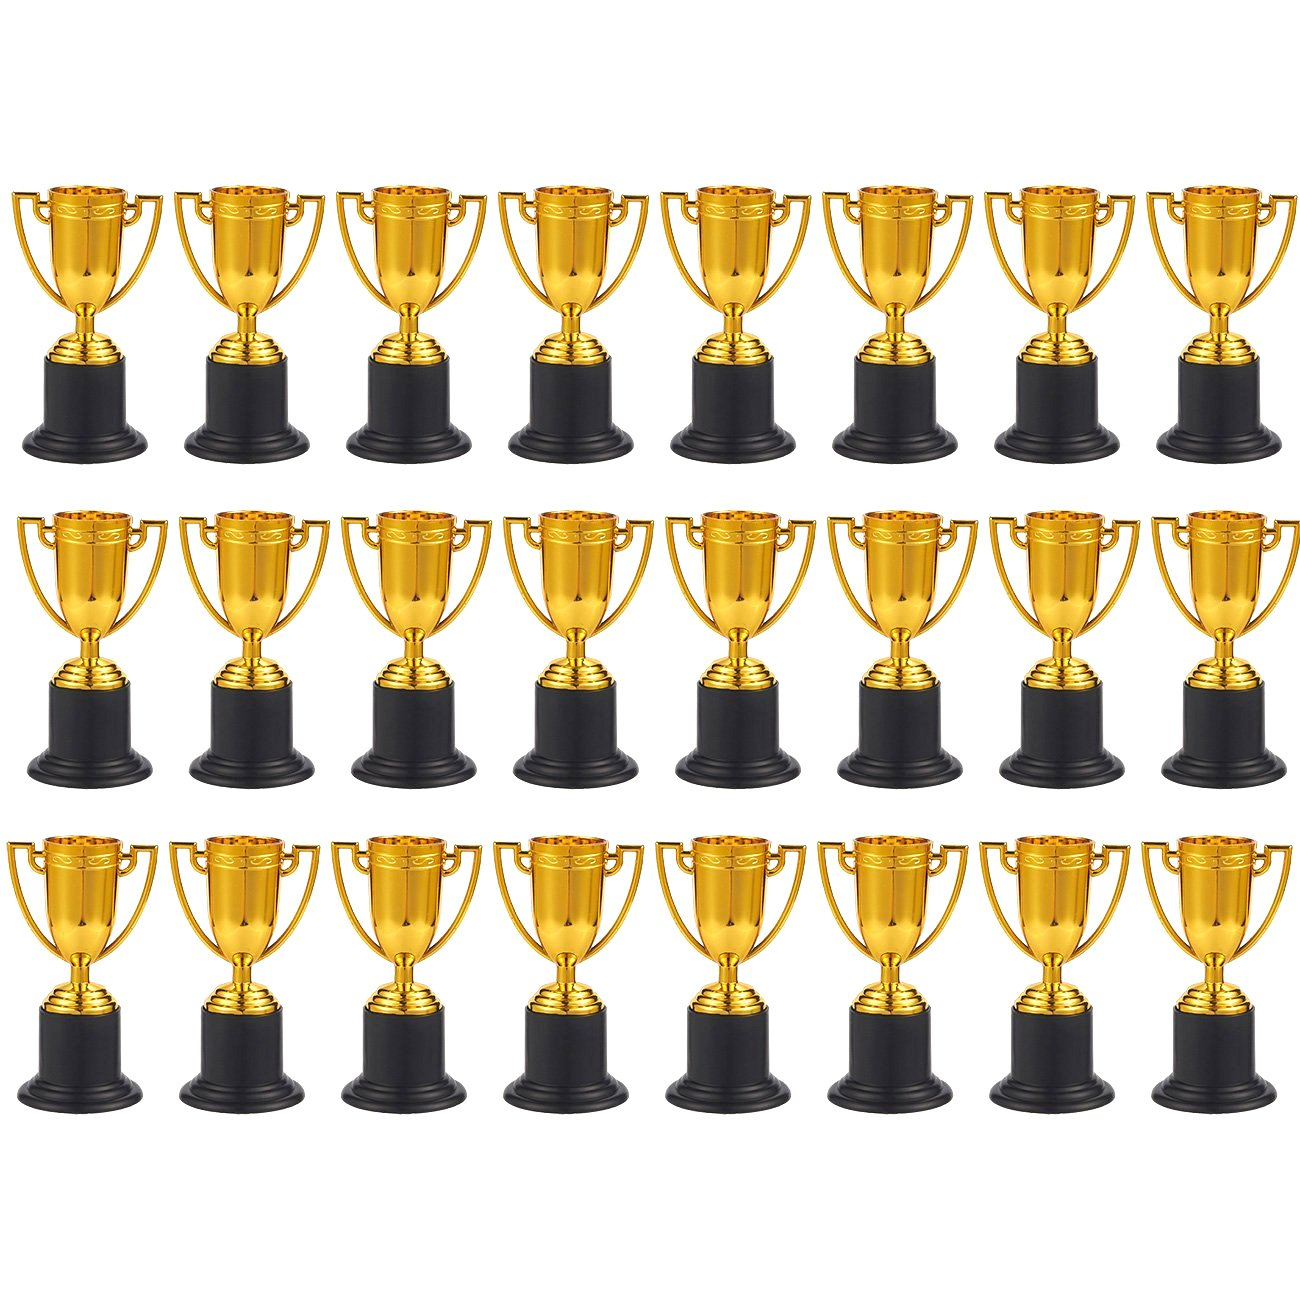 Juvale Award Trophies 1.9 x 4 x 1.9 Inches Parties 24-Pack Plastic Gold Trophy Cups for Sports Tournaments Competitions